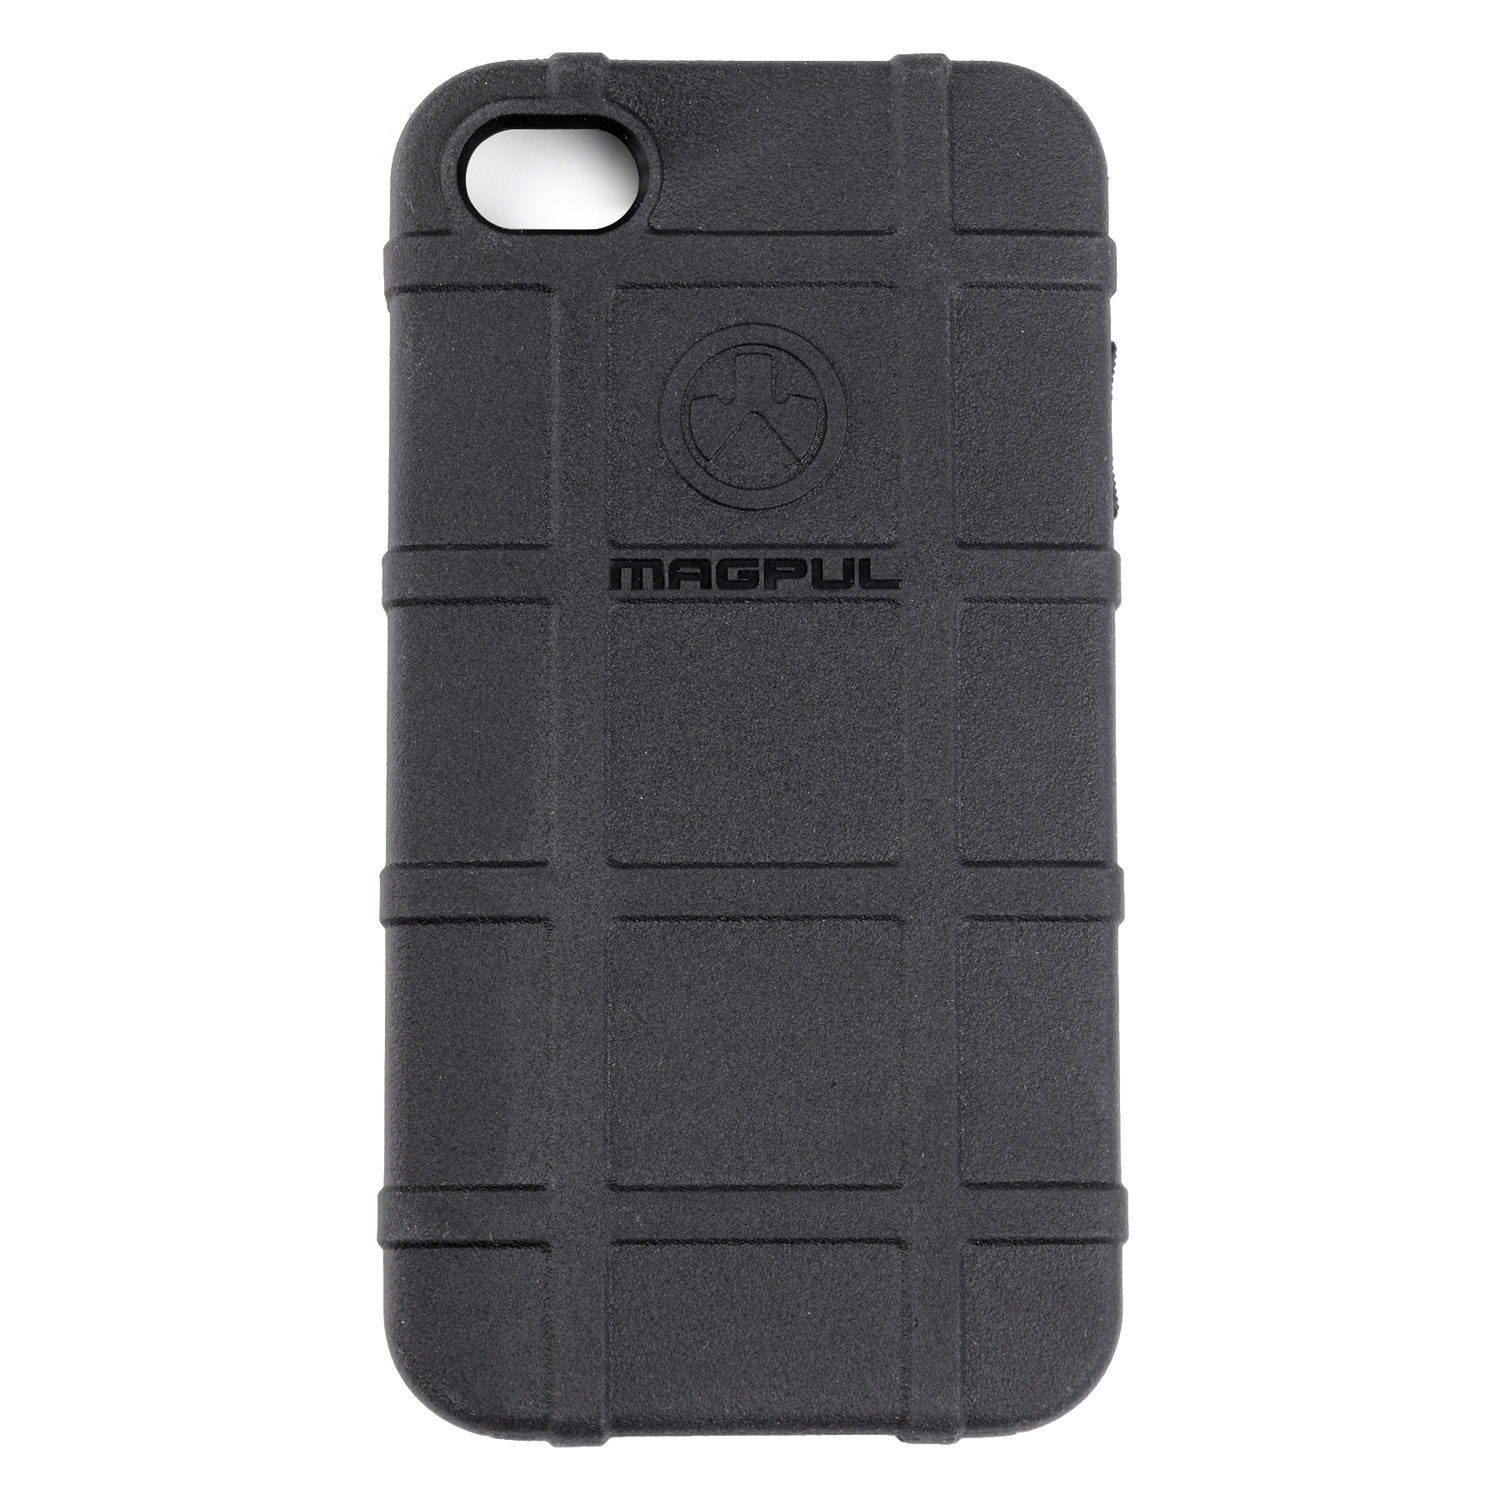 Magpul Field Case for the iPhone 4 and 4S